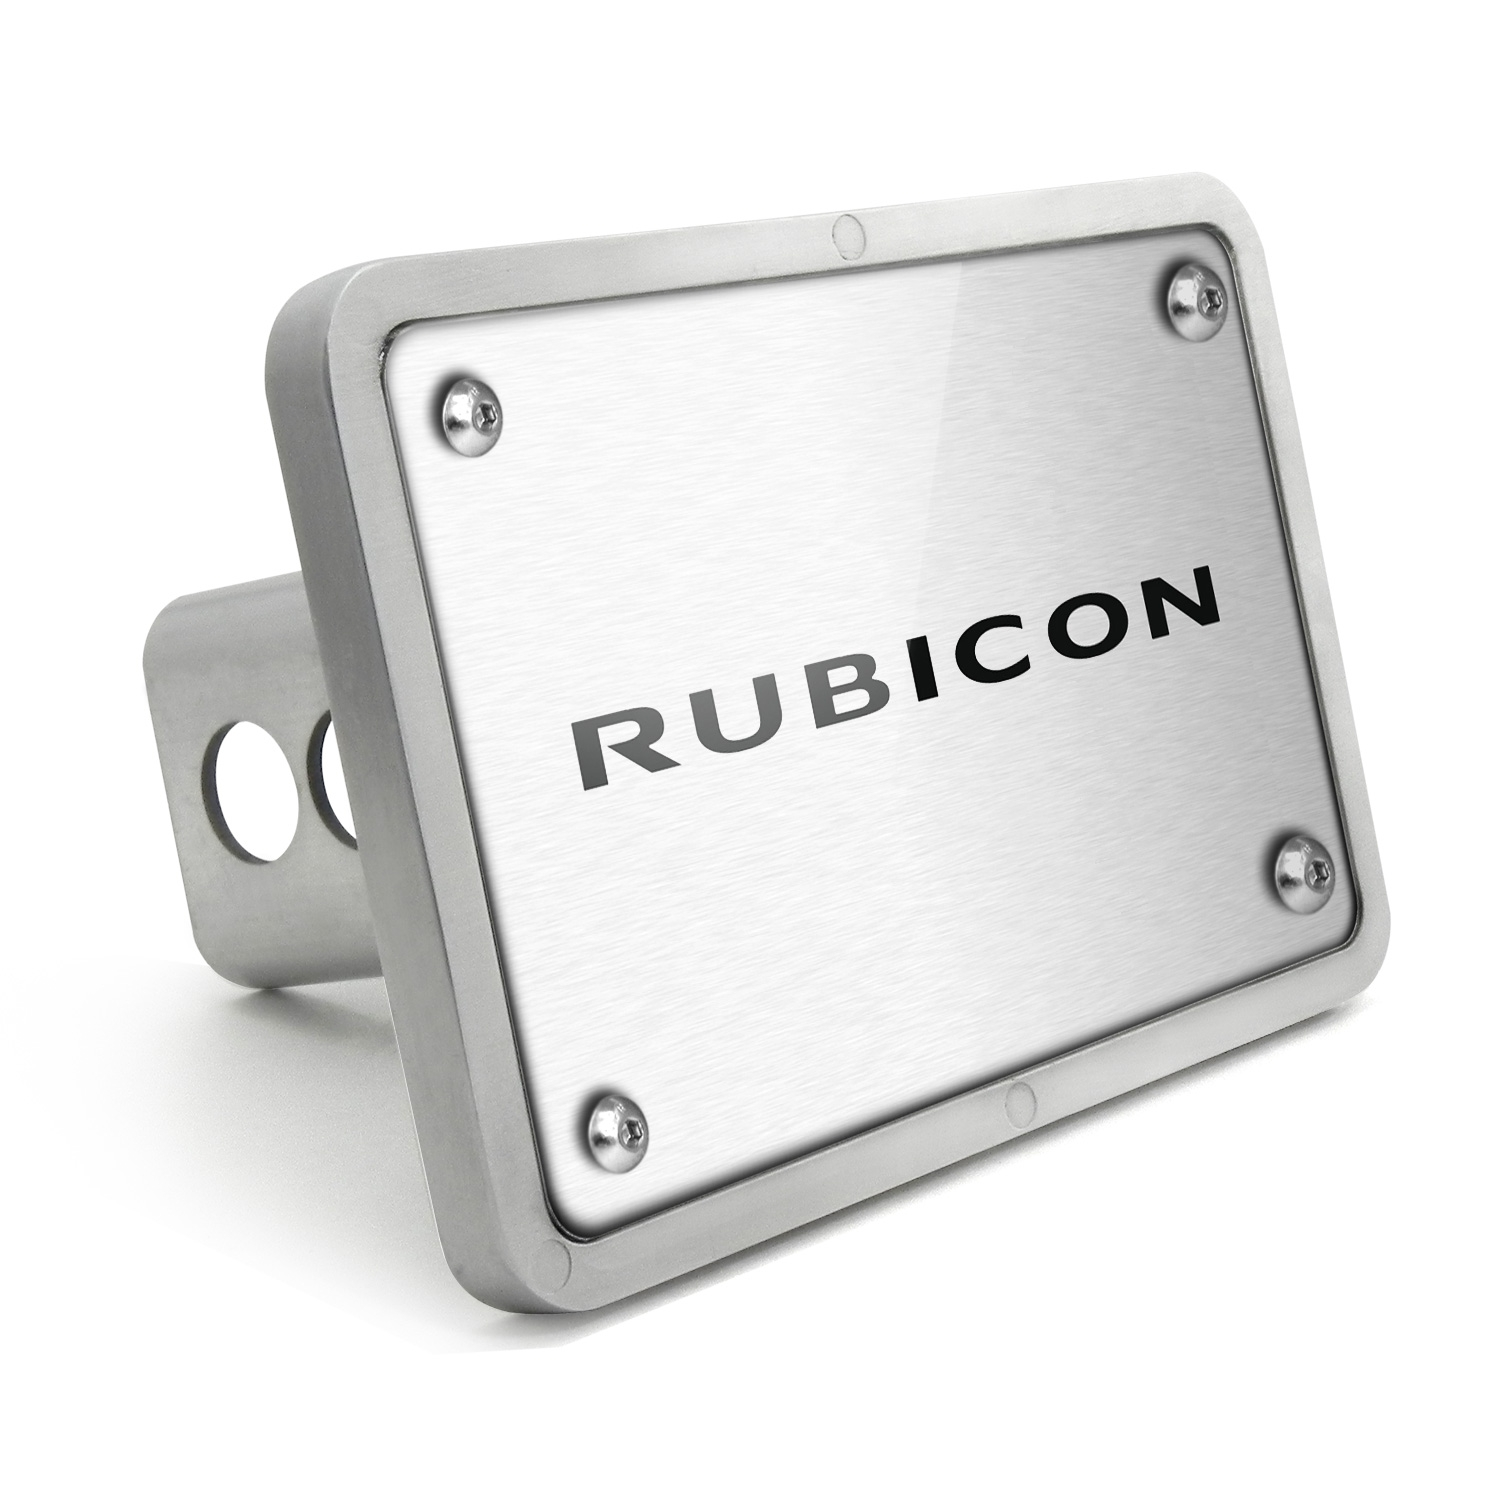 Jeep Rubicon UV Graphic Brushed Silver Billet Aluminum 2 inch Tow Hitch Cover